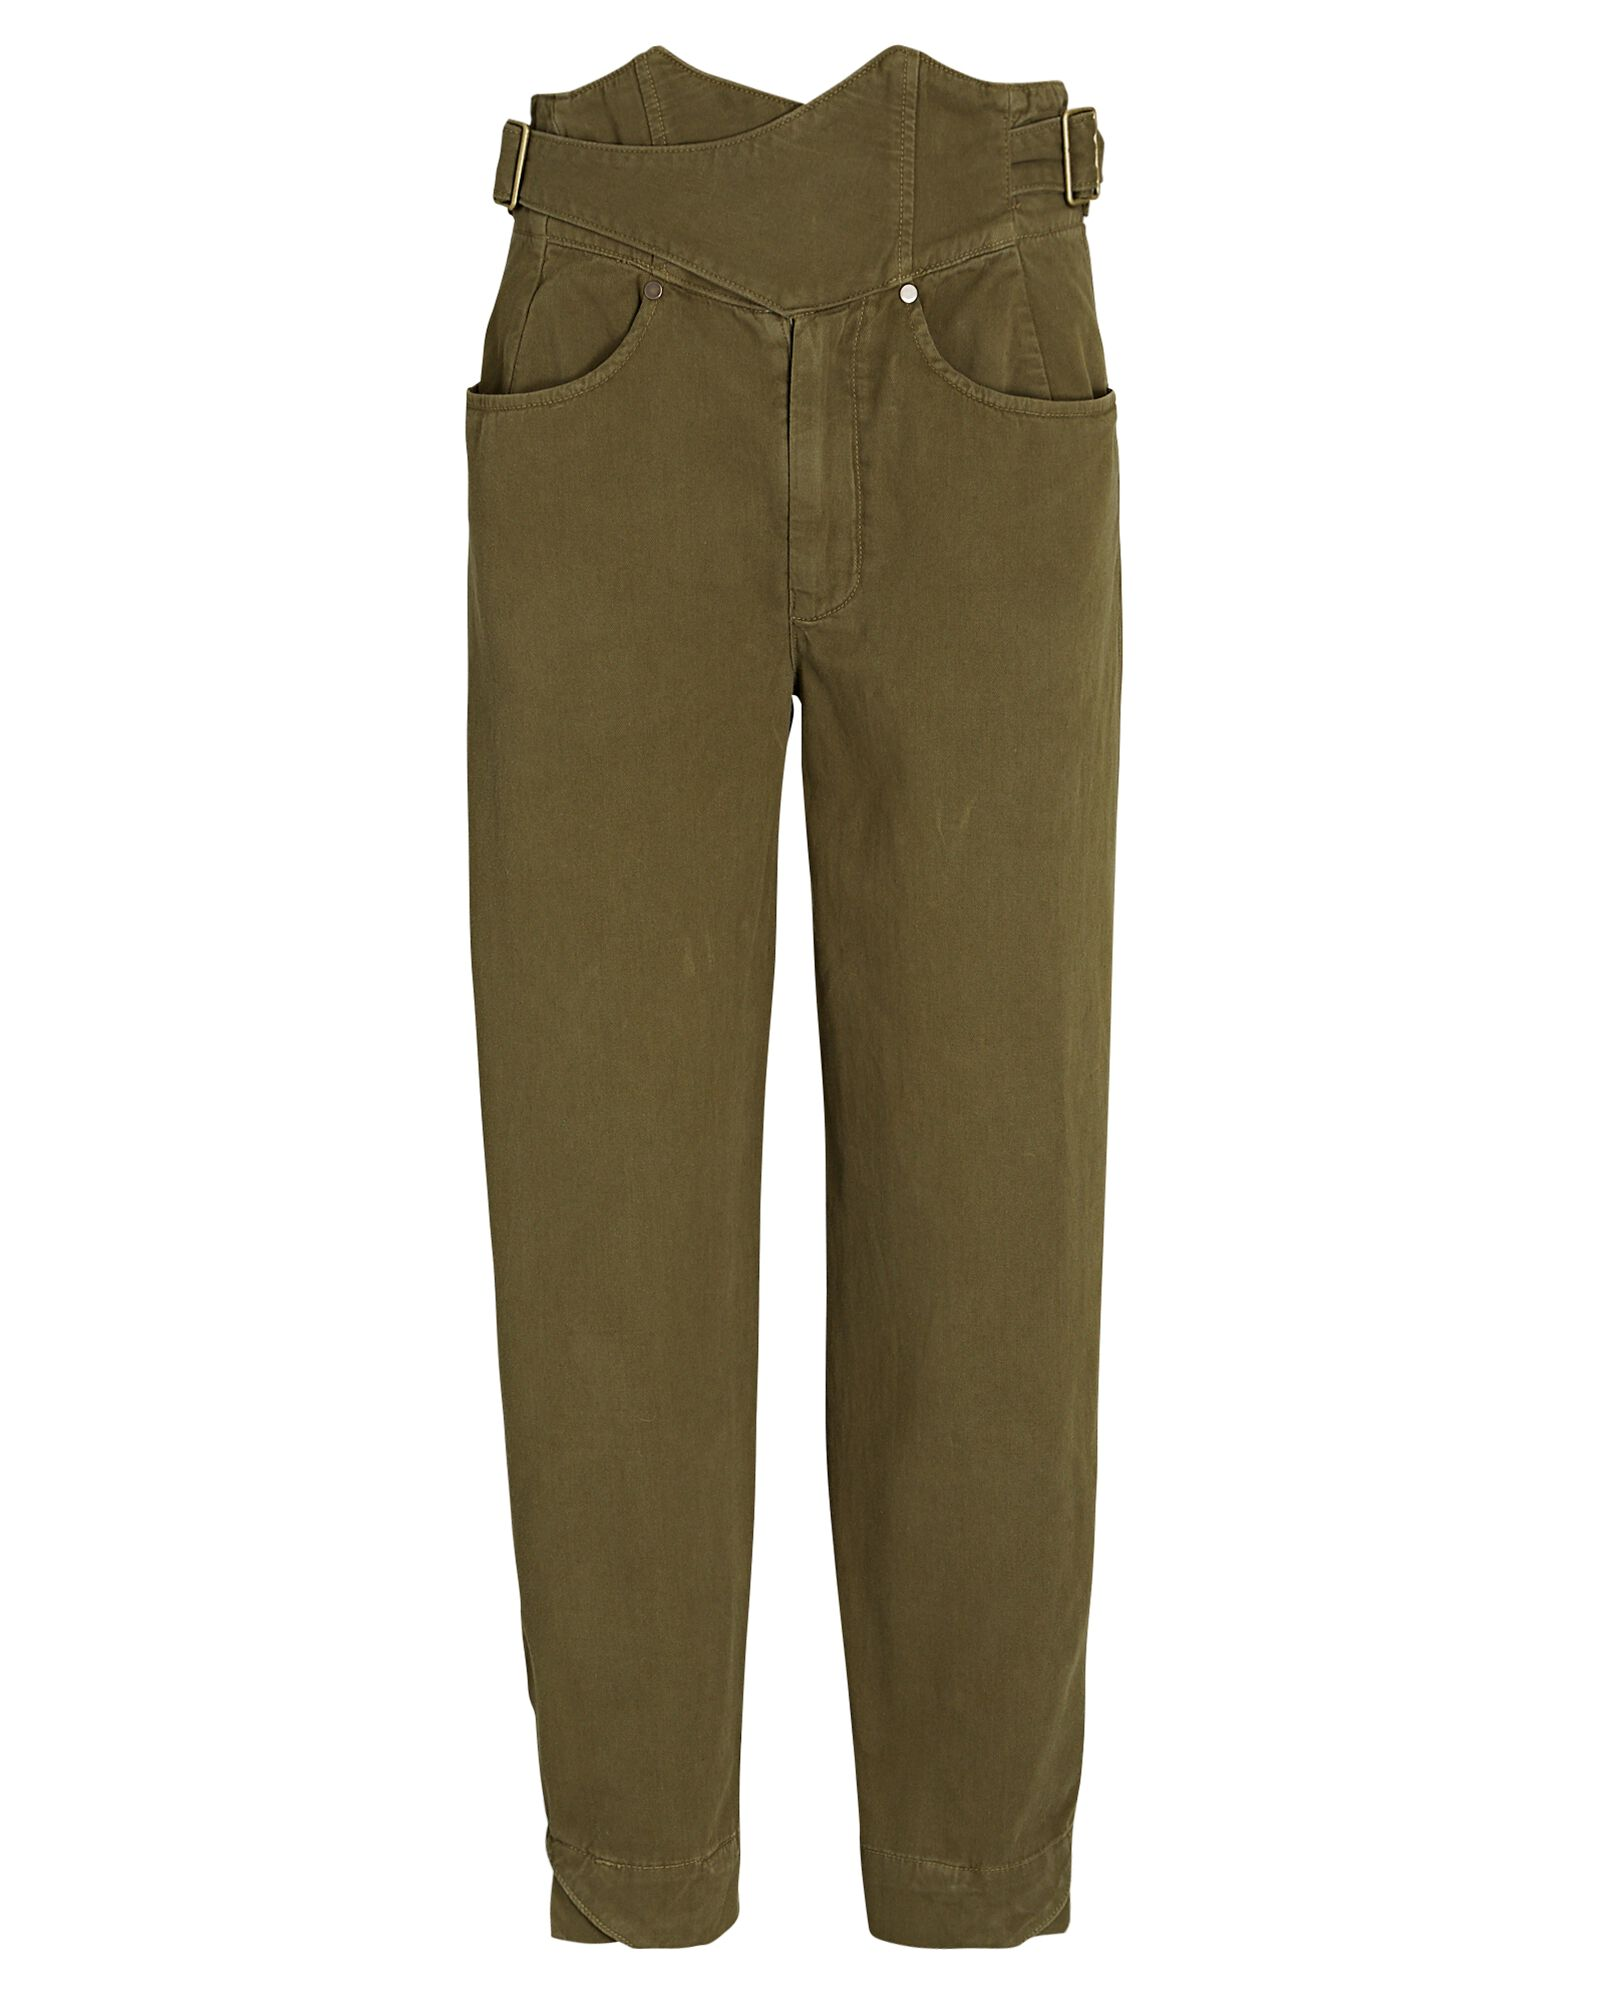 Aston High Rise Cross-Front Pants, OLIVE/ARMY, hi-res